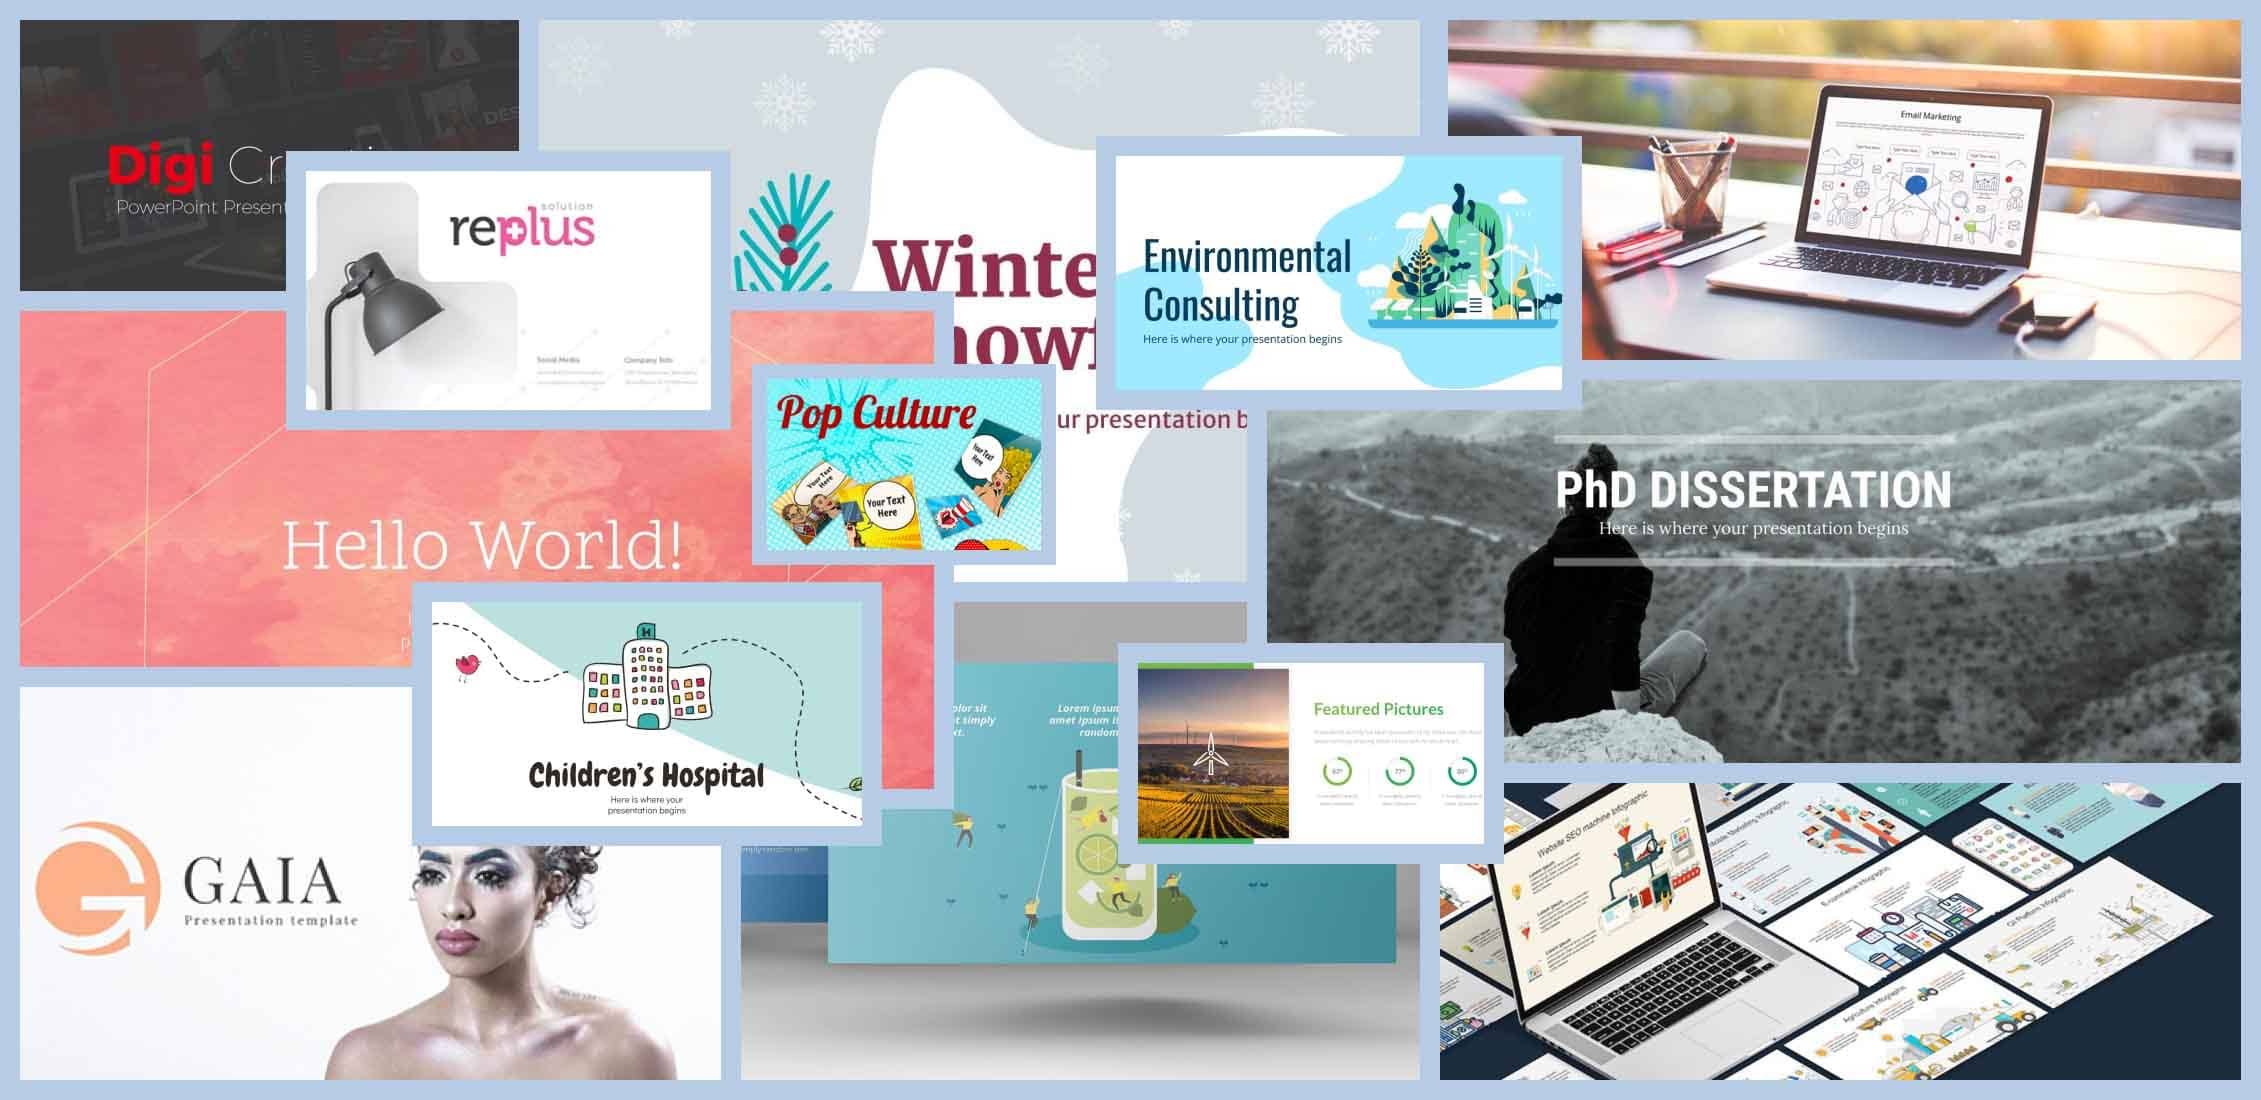 35 Best PowerPoint Presentation Templates 2021 Free and Paid Example.